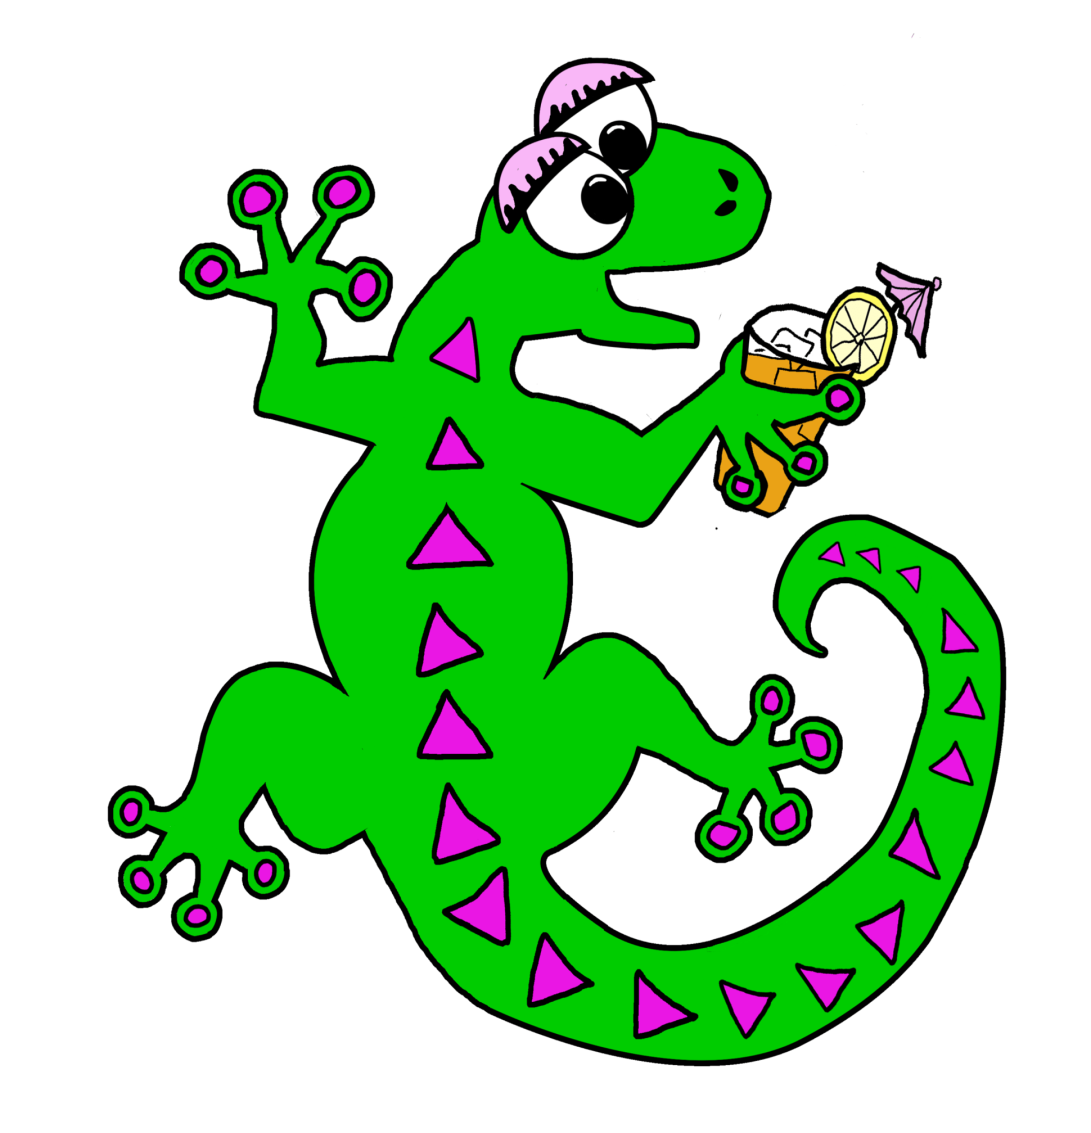 friday-night-lizard-with-text-e1536334559103.png